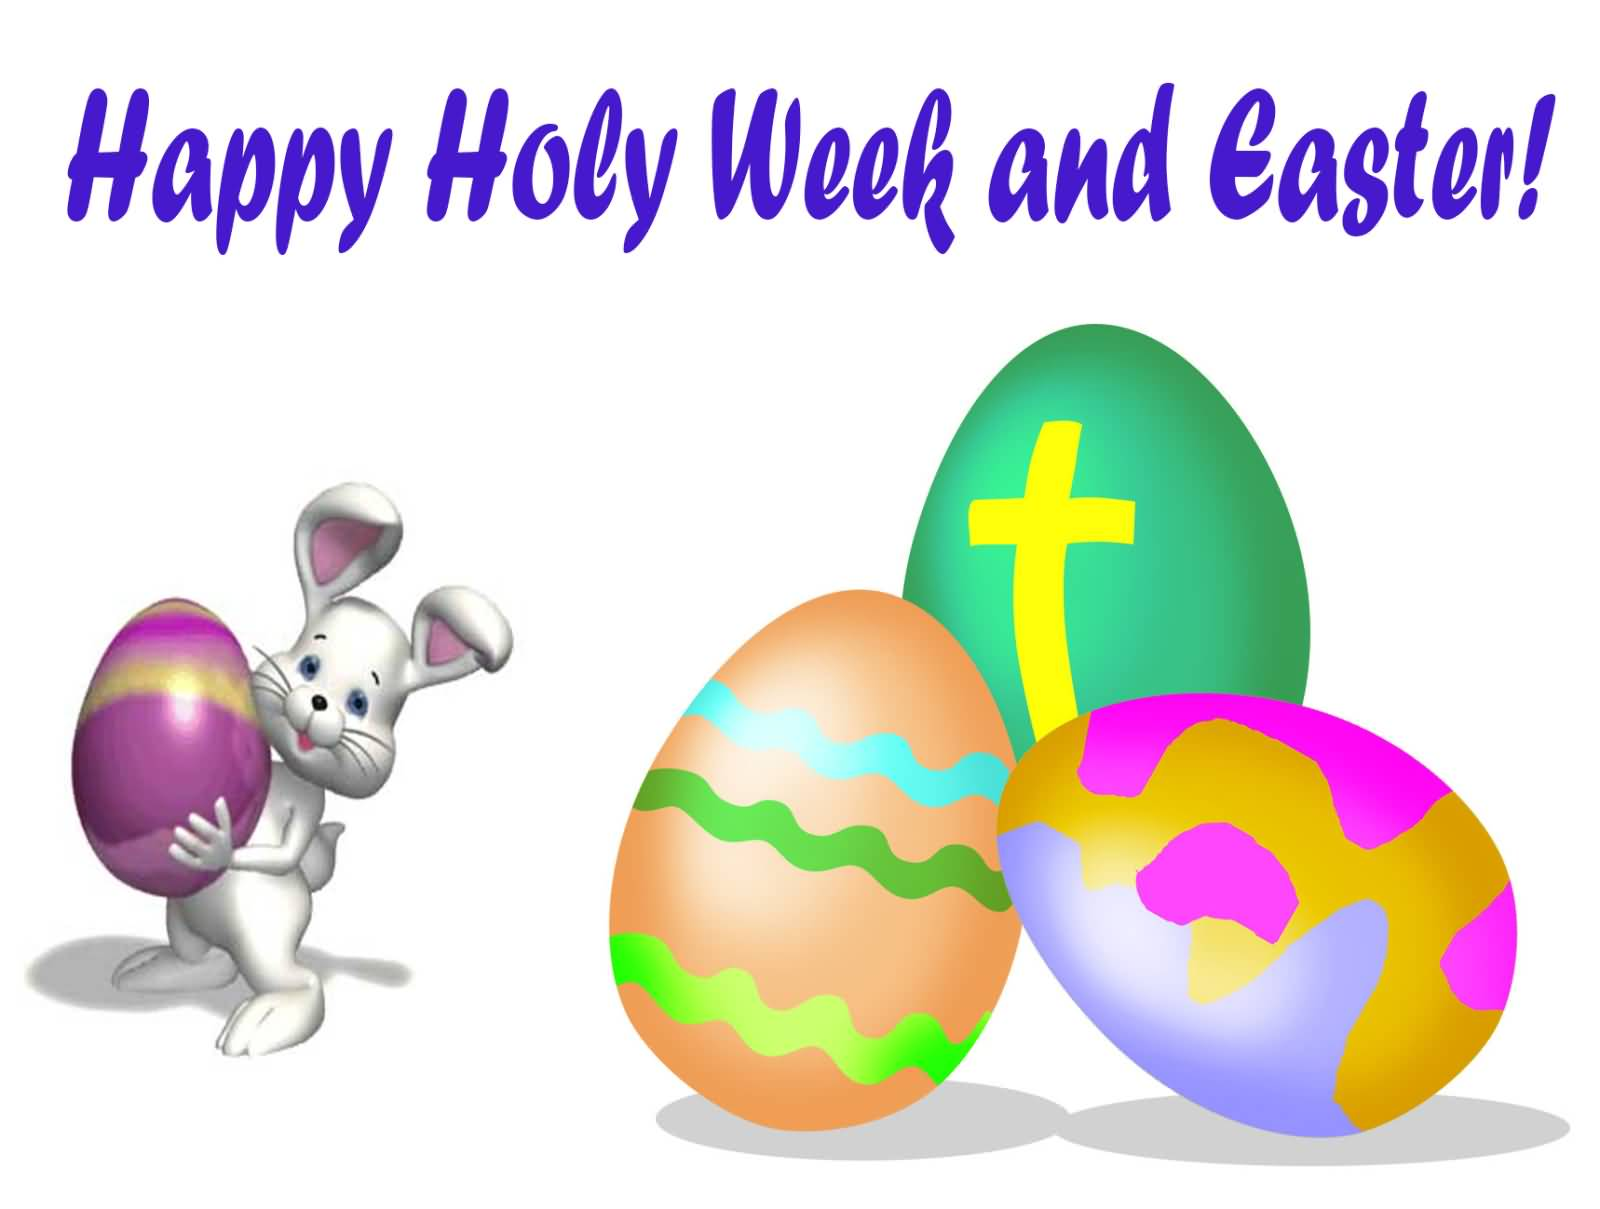 Holy week clipart happy. Most adorable greeting